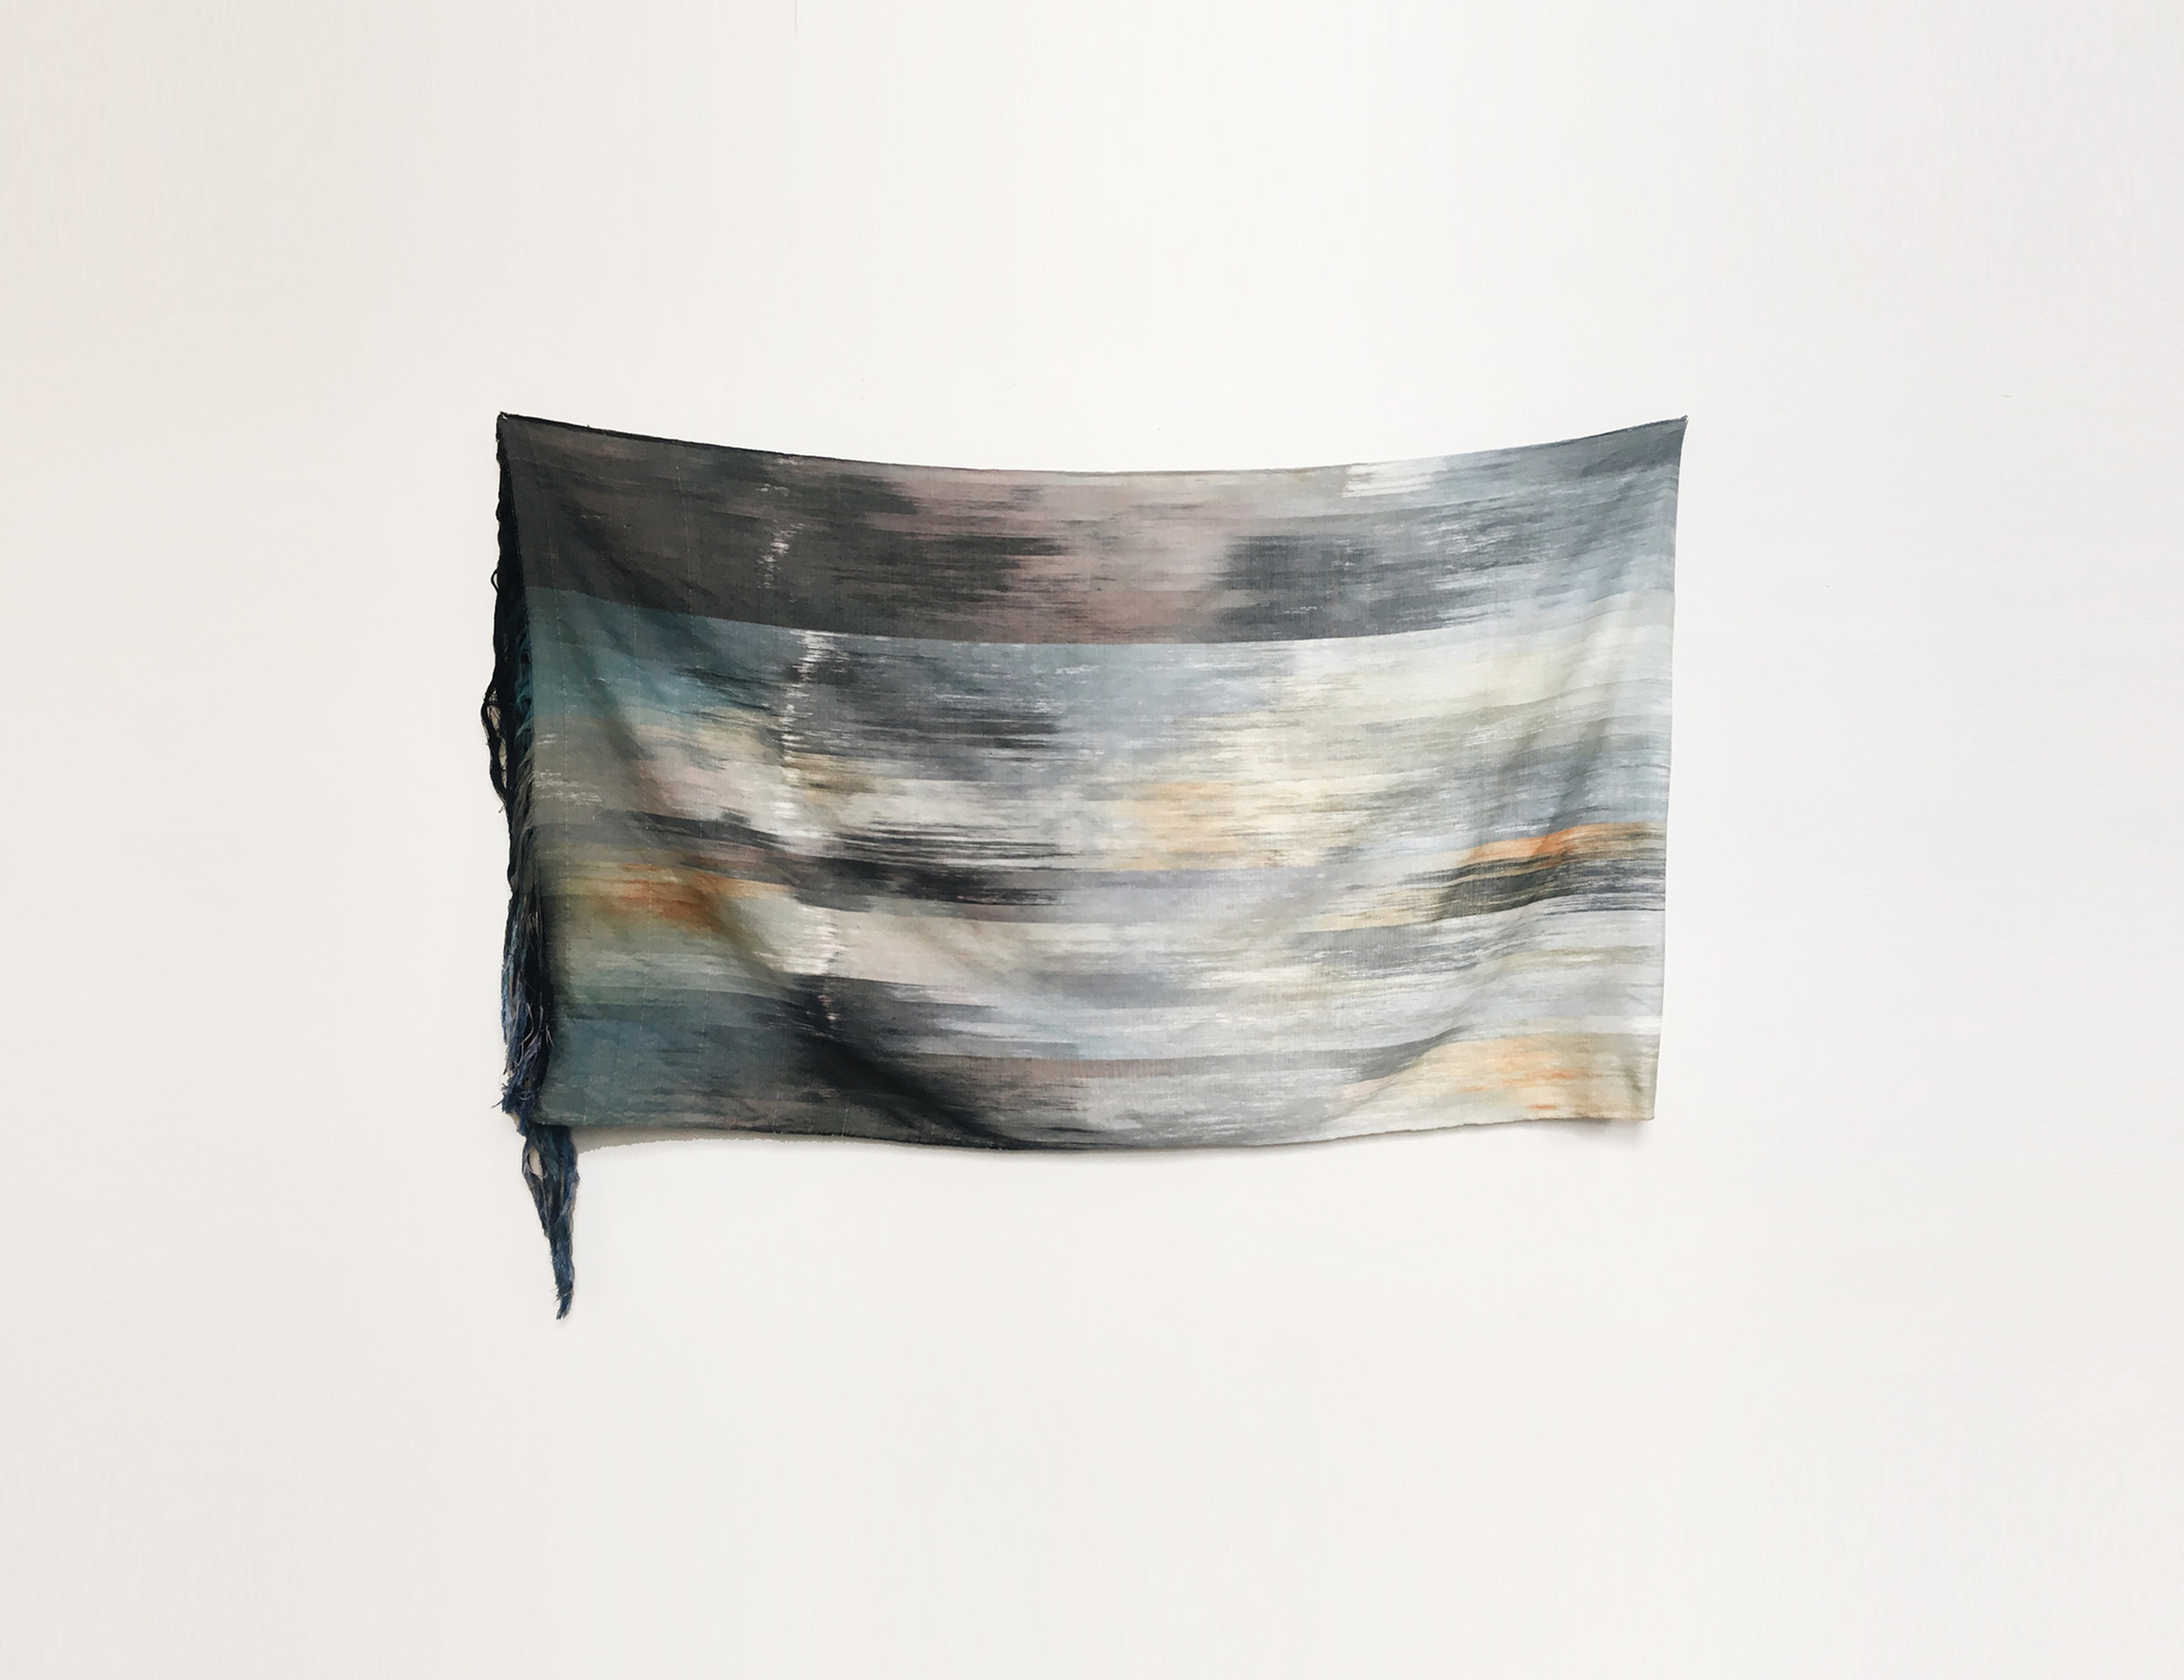 """IMG_1374 ,  2017 Woven hand dyed & Ikat cotton warp 40"""" x 74""""  Alexander Sebastianus H   Archived at the Kin